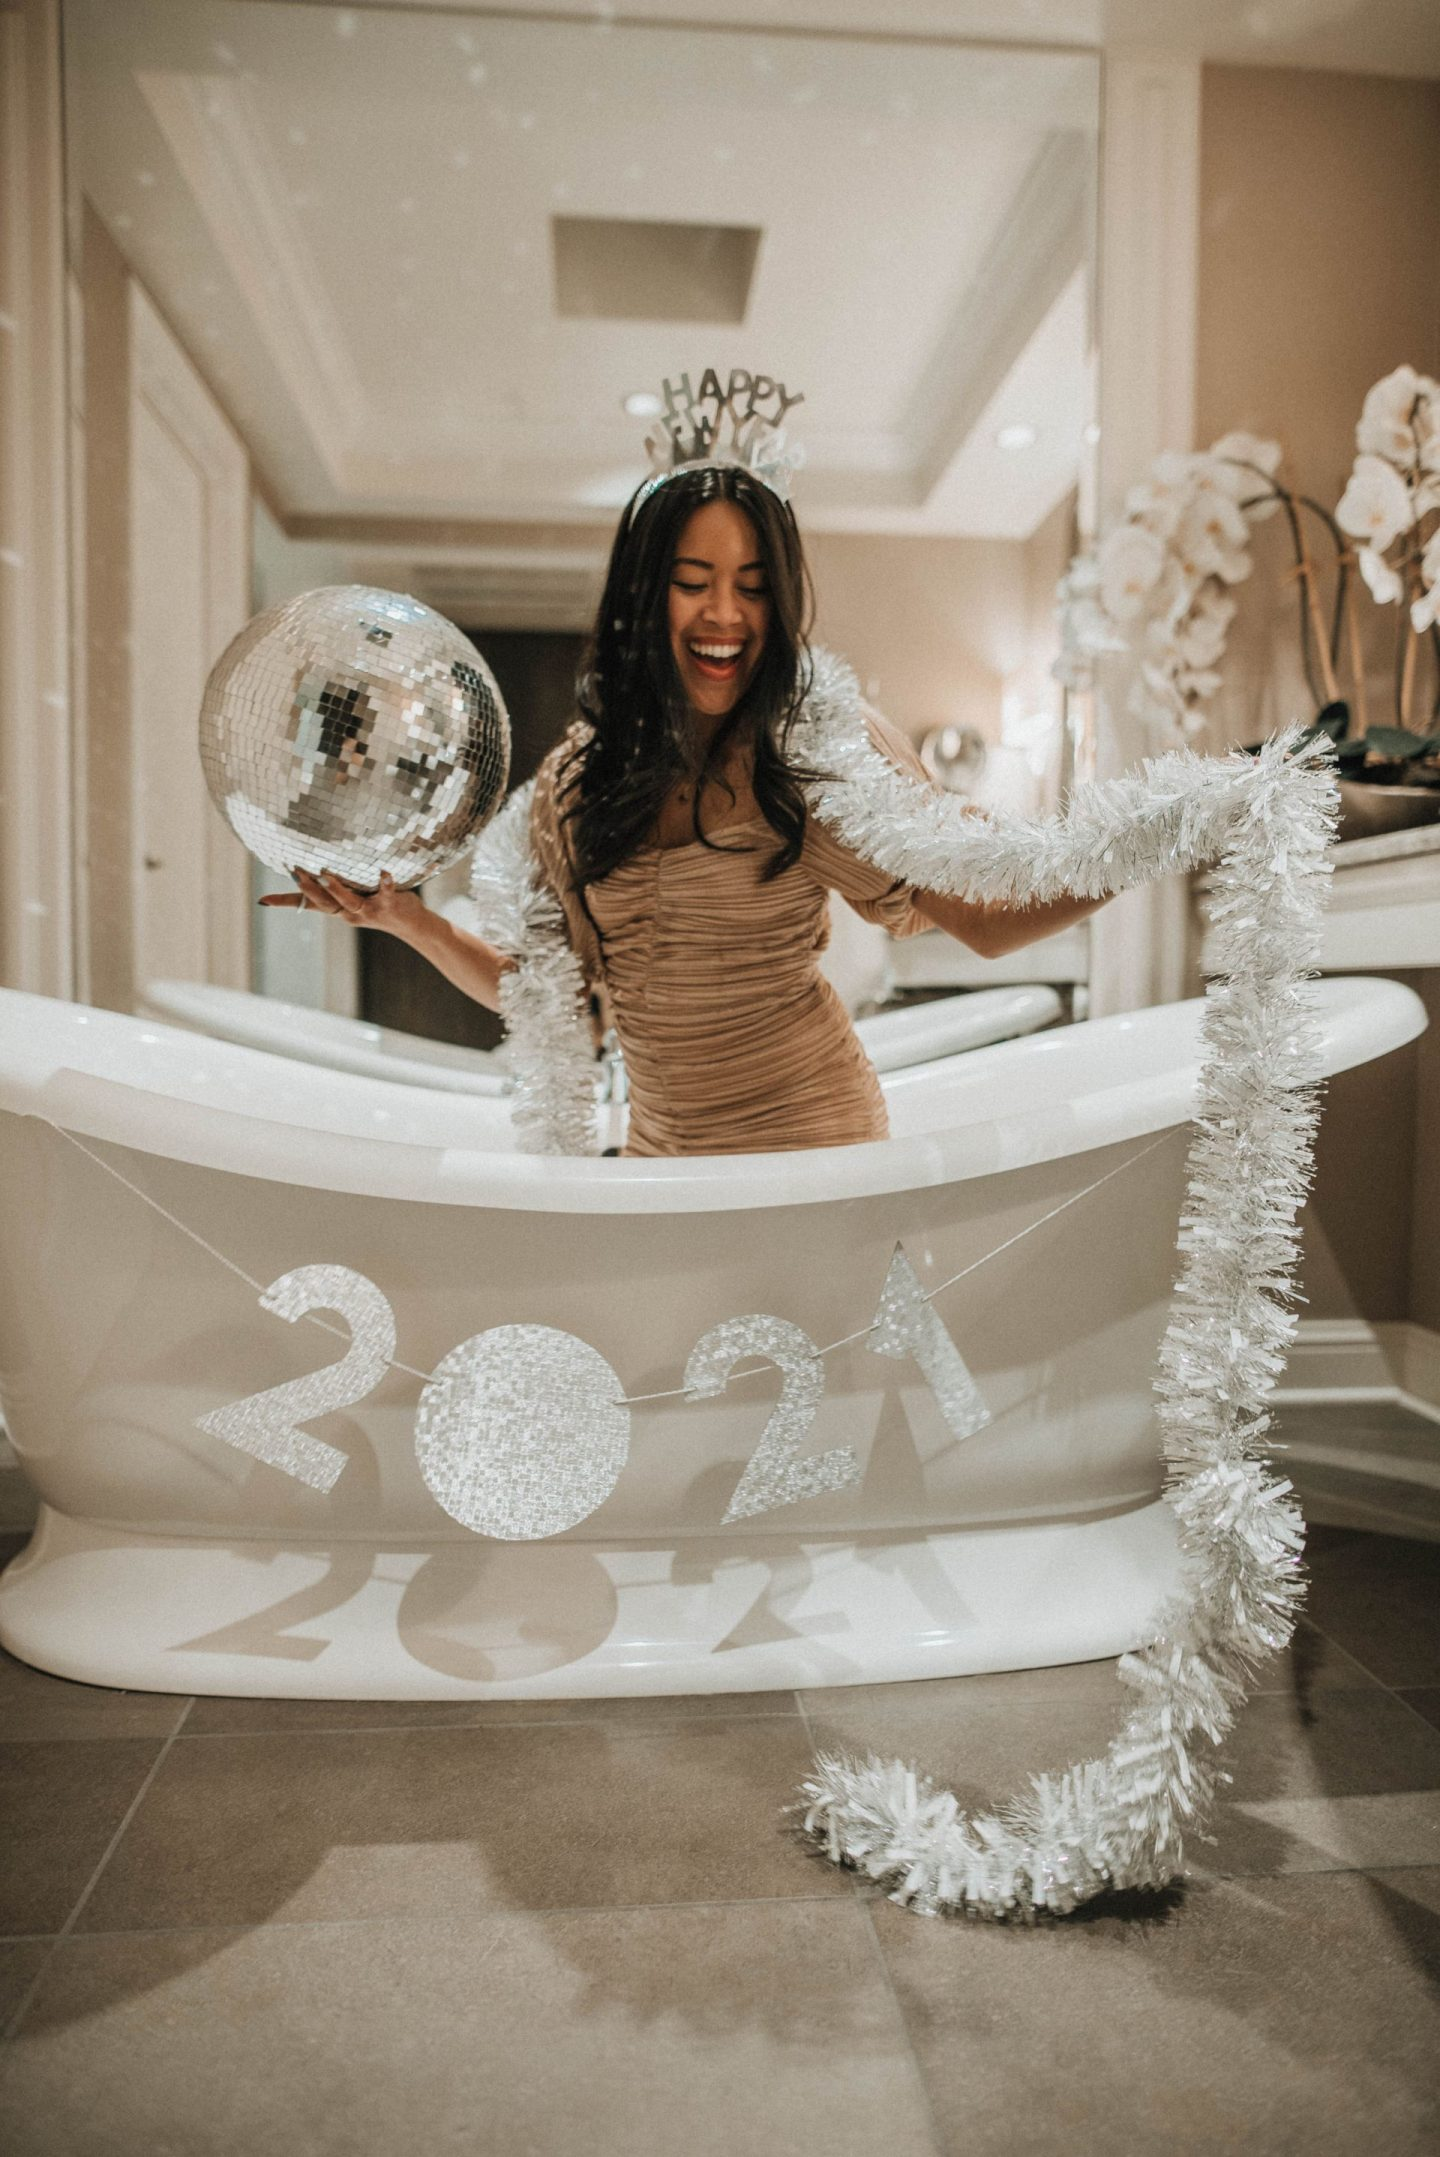 Decorate your bathtub for New Year's Eve - New Year's Eve photo shoots - New Year's Inspiration - www.emmasedition.com - copyright @emmasedition